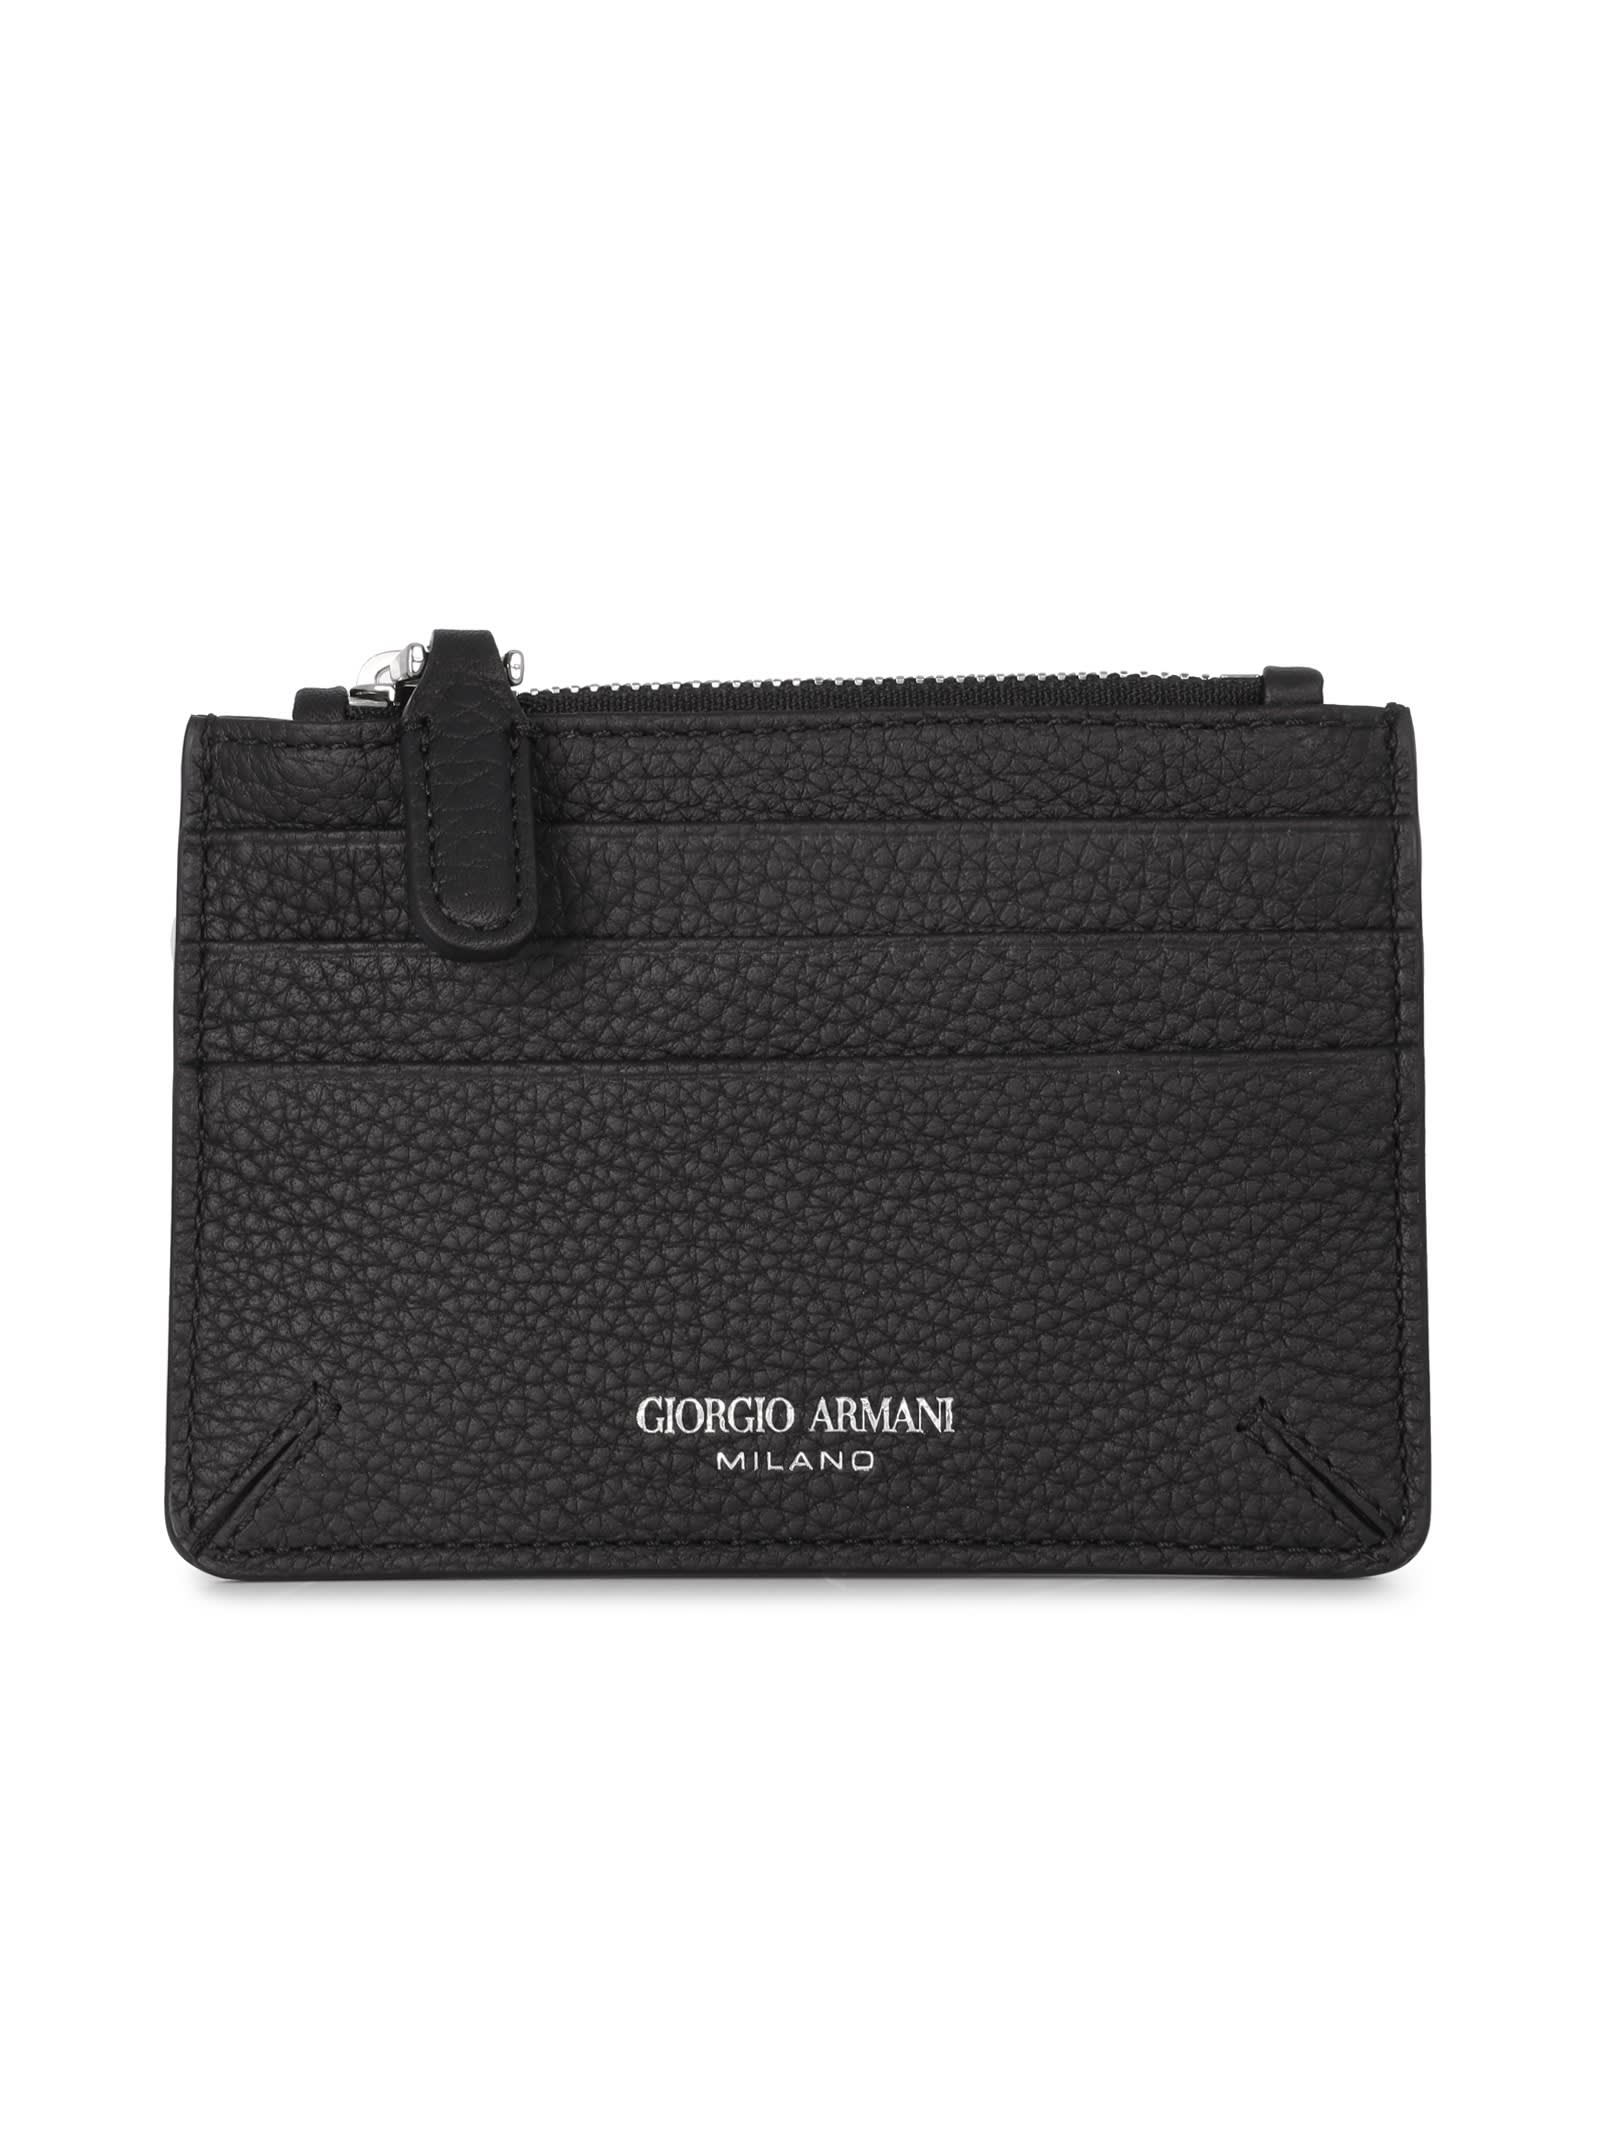 Giorgio Armani Leather Card Holder